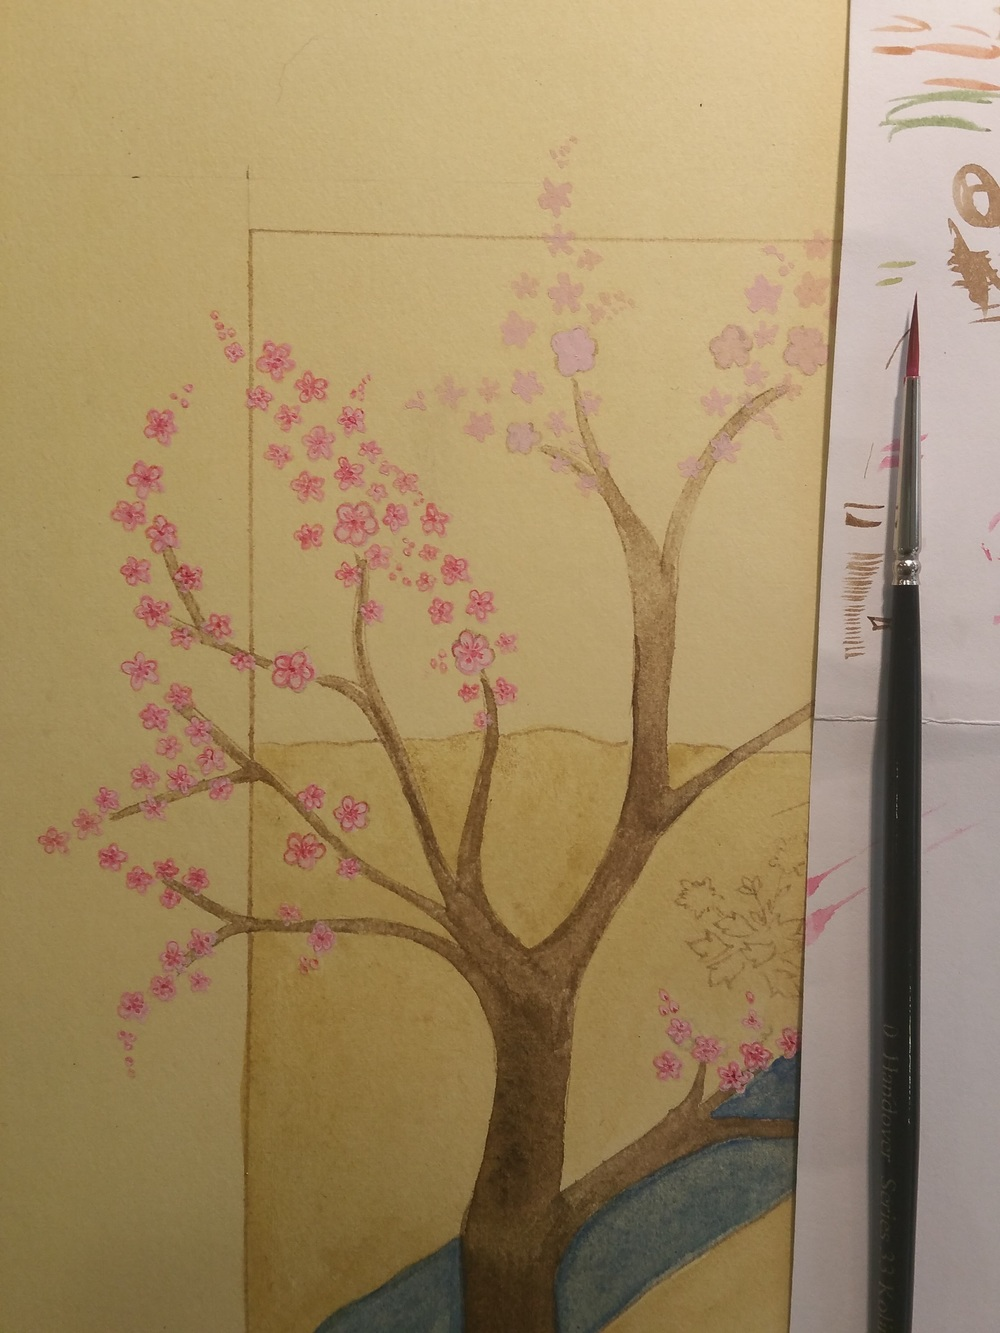 Adding layers of colour and detail to the blossom